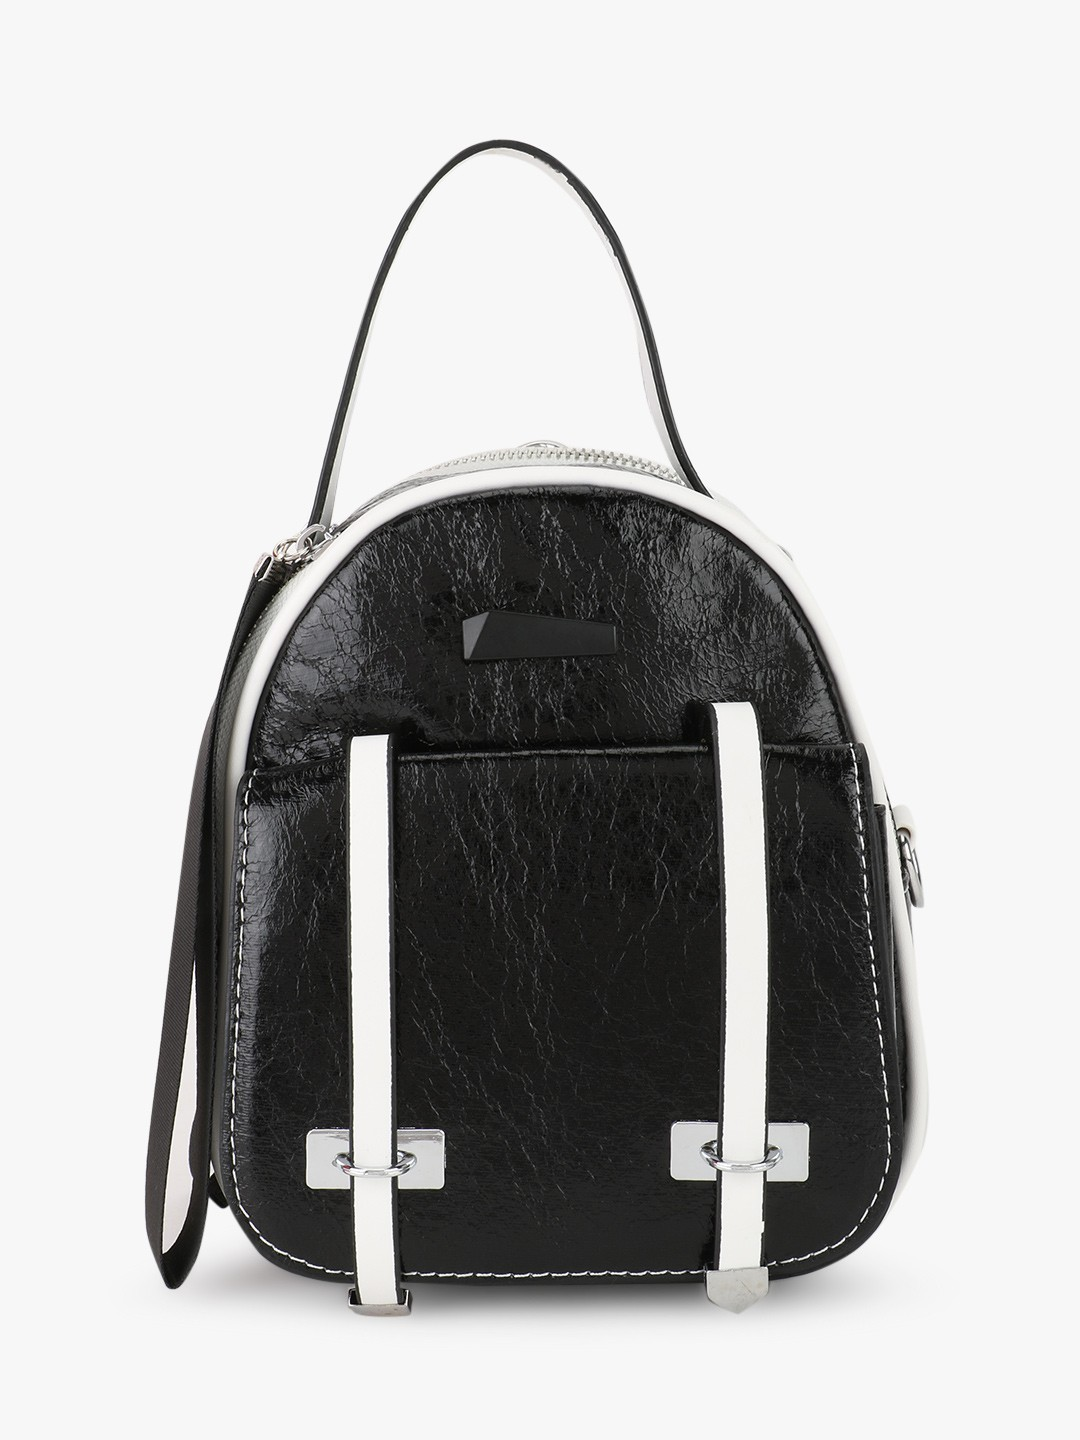 Origami Lily Black/White Holographic Mini Backpack 1